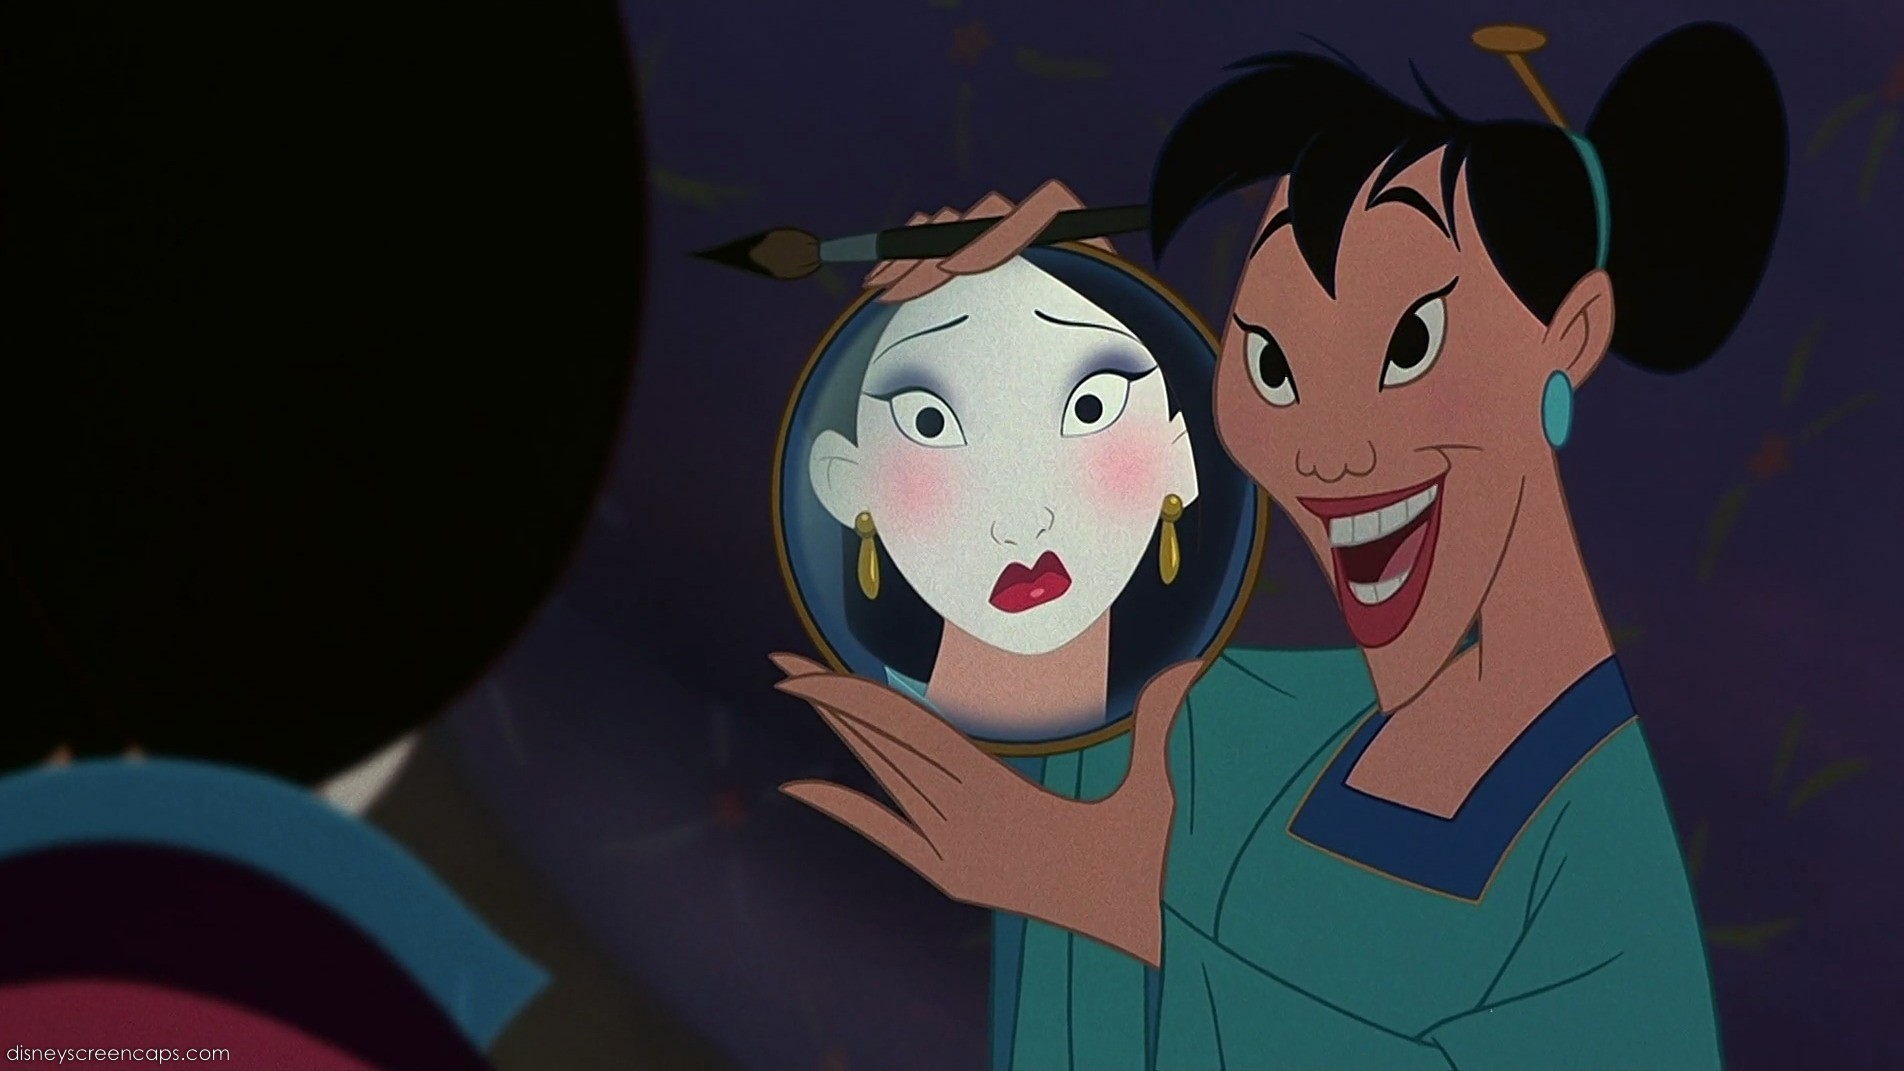 Disney Princess Meme Mulan Disney Movie of the Mo...